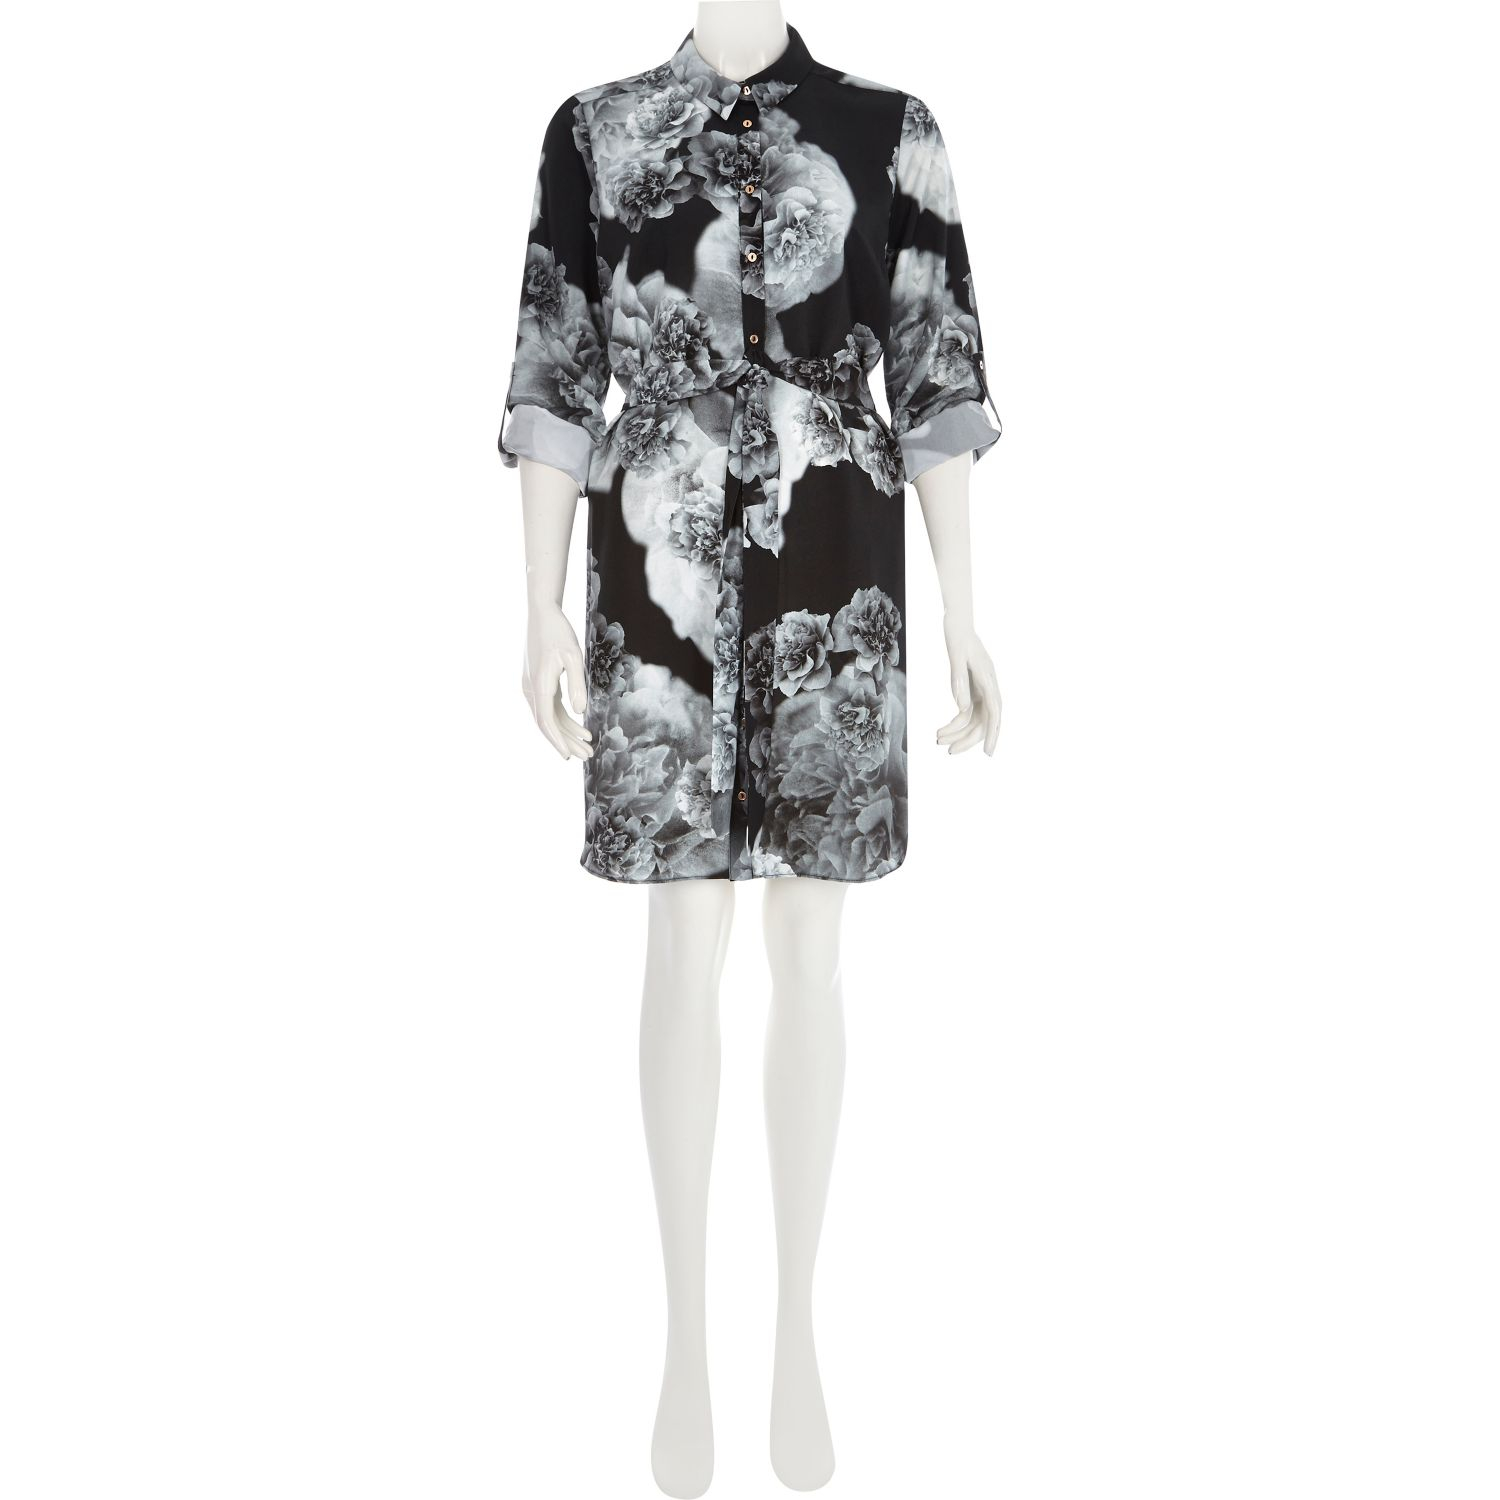 Black and white floral shirt dress